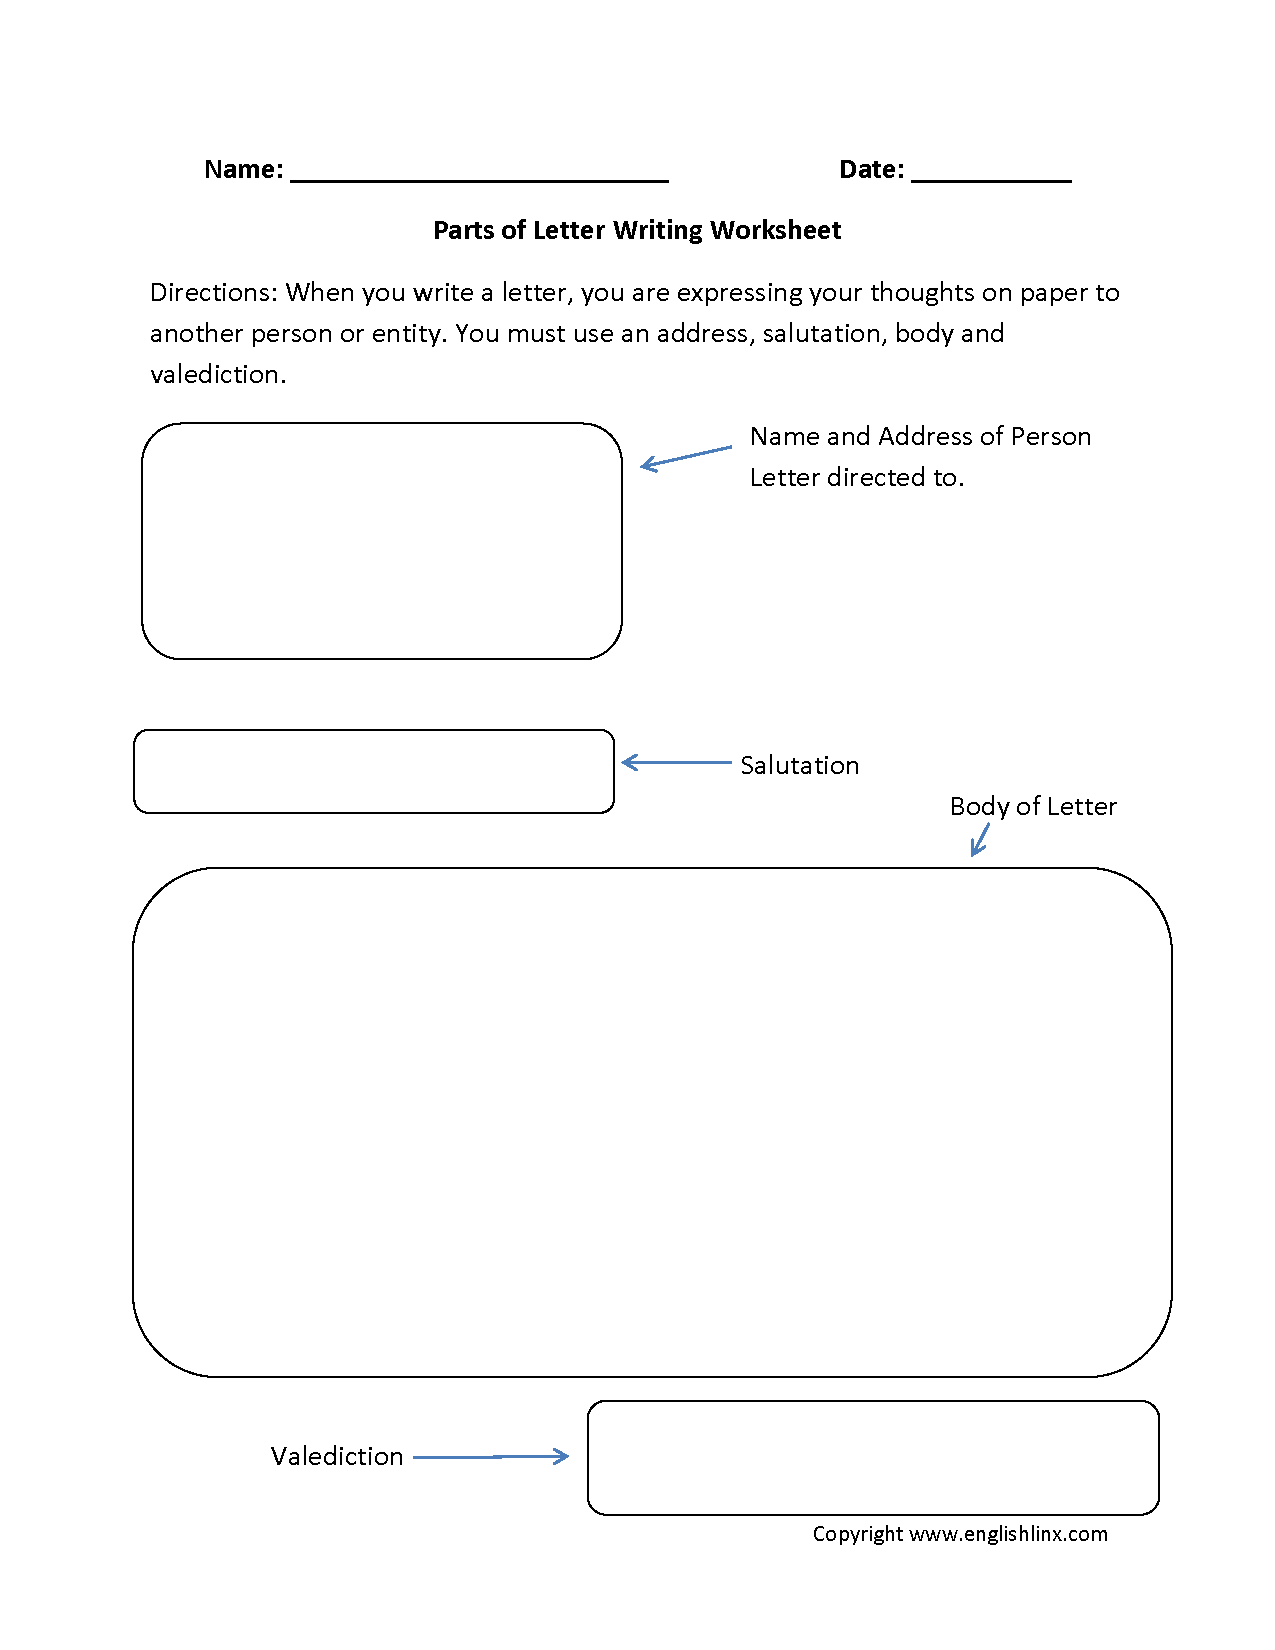 Writing Worksheets Letter Writing Worksheets Letter Writing Worksheets Writing Worksheets Informal Letter Writing [ 1650 x 1275 Pixel ]